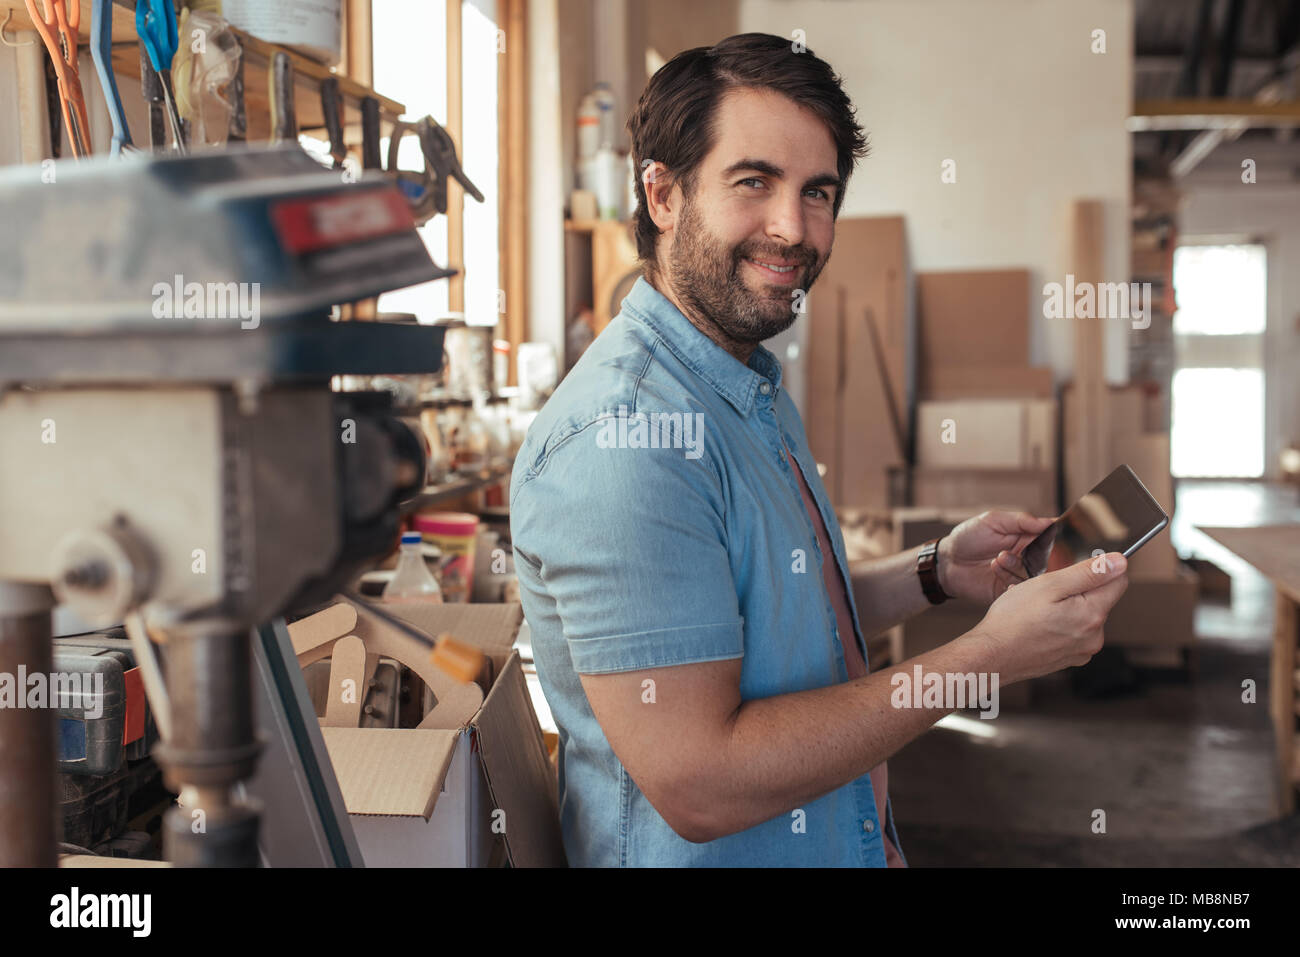 Smiling artisan using a tablet in his carpentry workshop - Stock Image